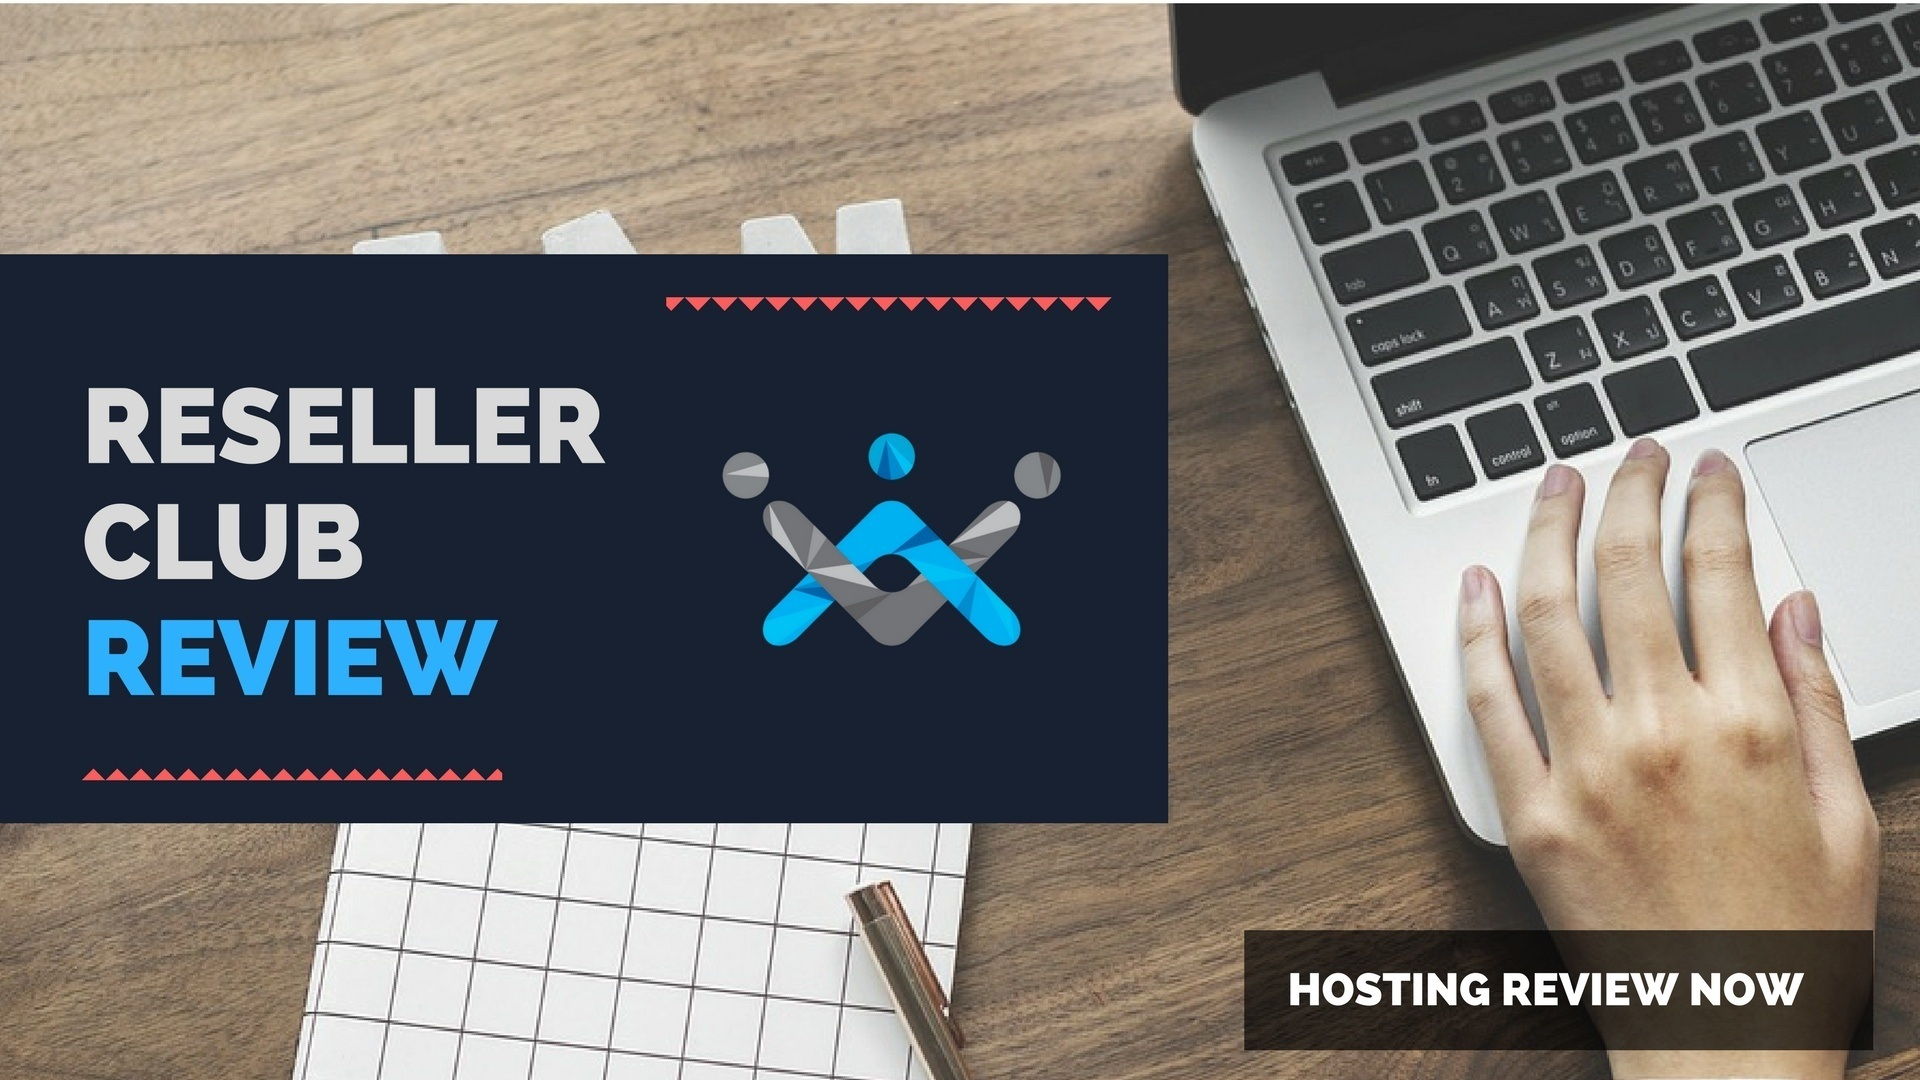 Reseller club Review 2018